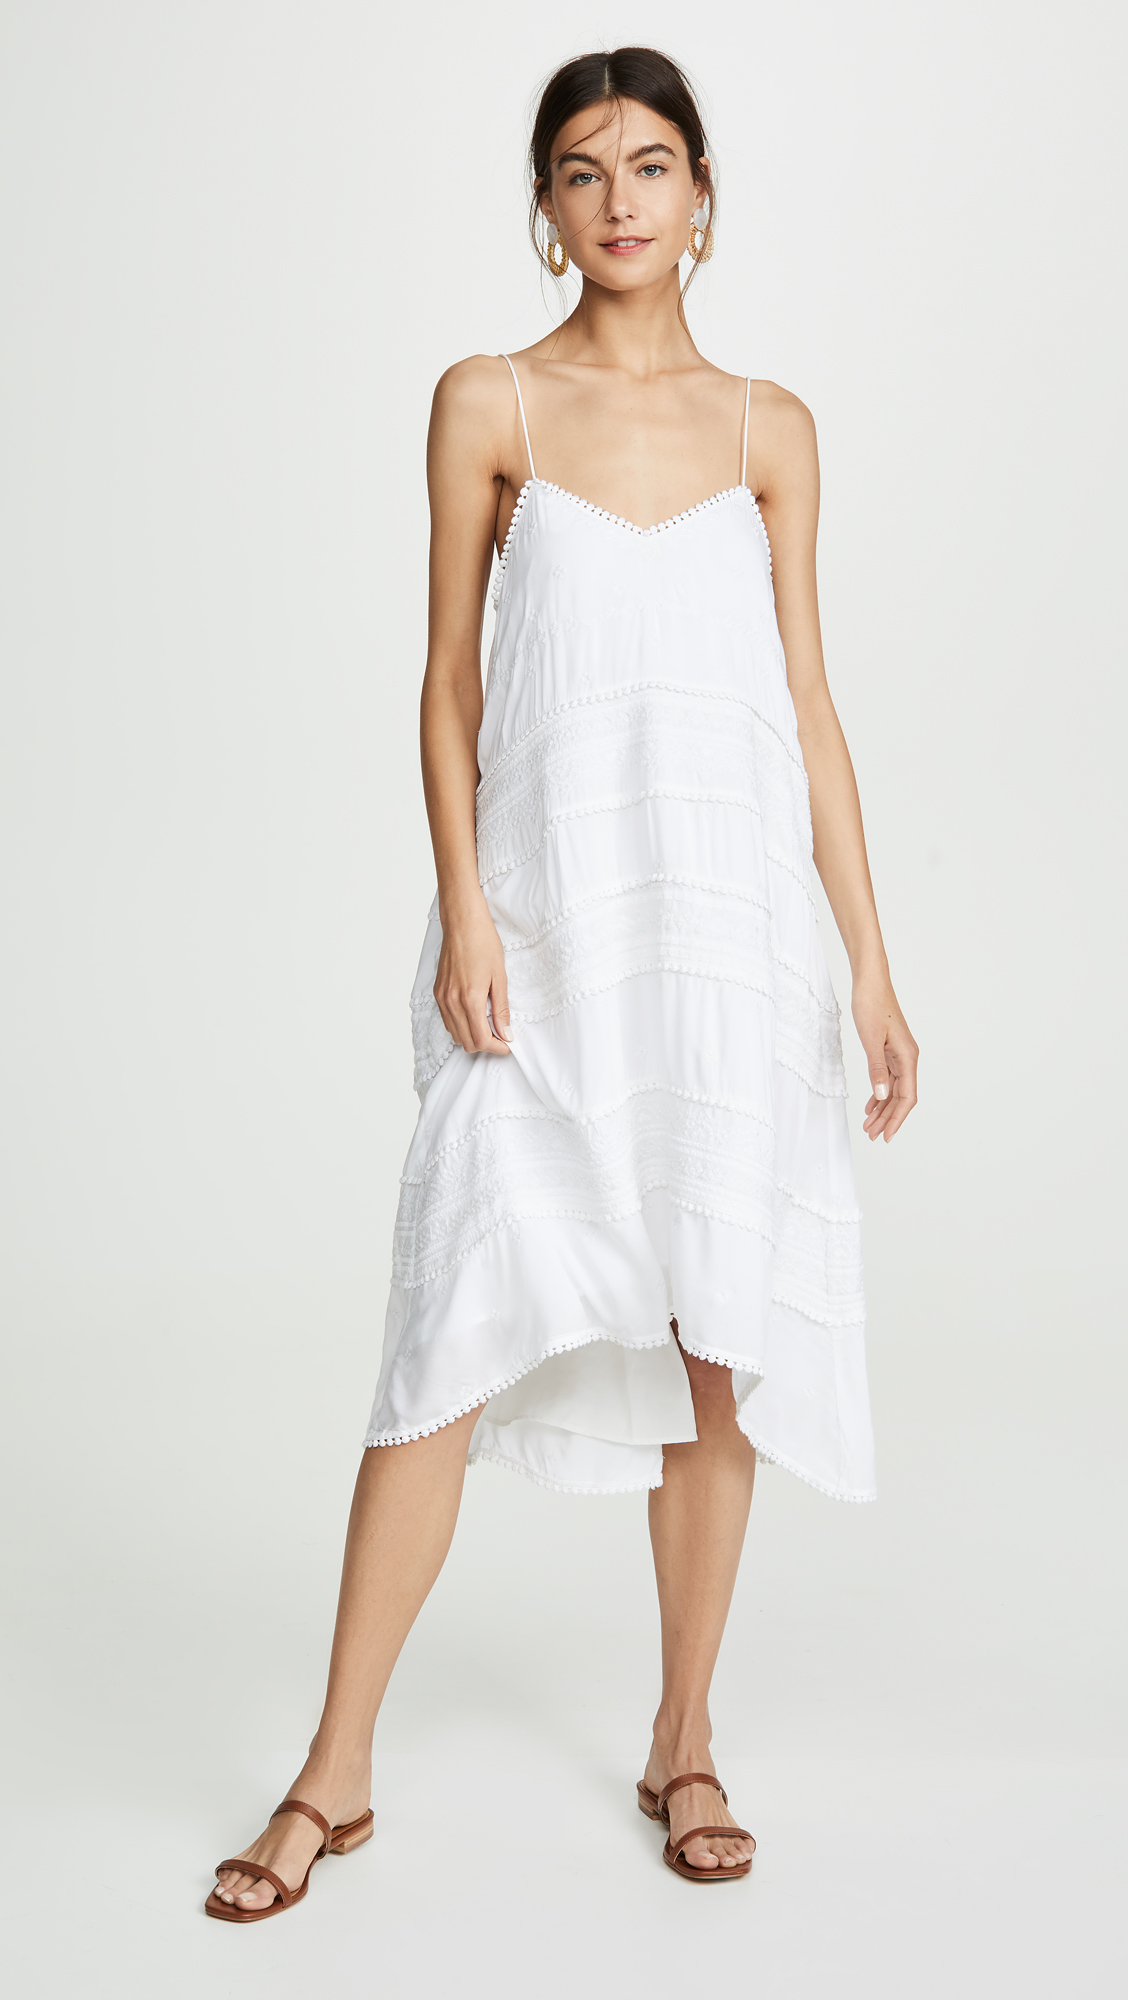 Spring dresses, including Club Monaco Hayzehl Embroidered Midi Dress | glitterinc.com | @glitterinc